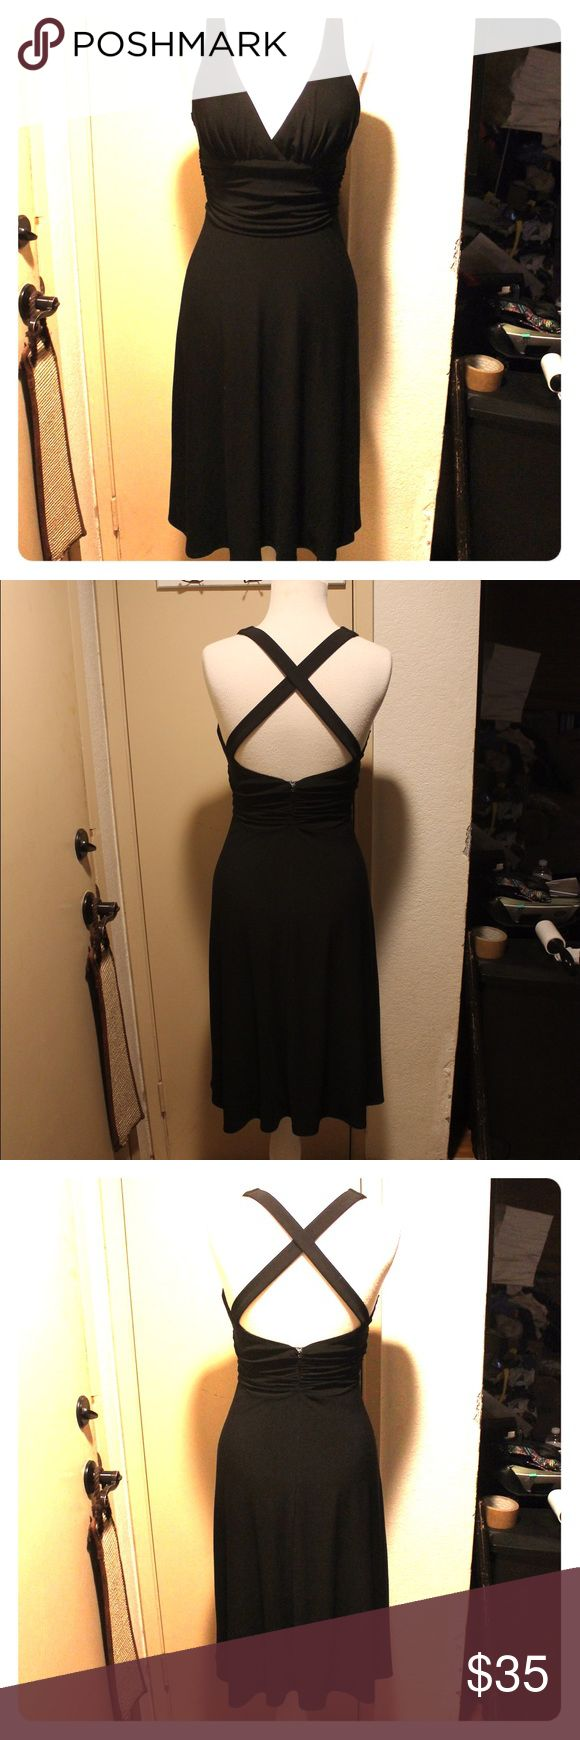 LAUNDRY by Shelli Segal LBD crisscross back size 4 LAUNDRY by Shelli Segal LBD crisscross back size 4 not even sure if i ever wore it... but it doesn't have tags Laundry by Shelli Segal Dresses